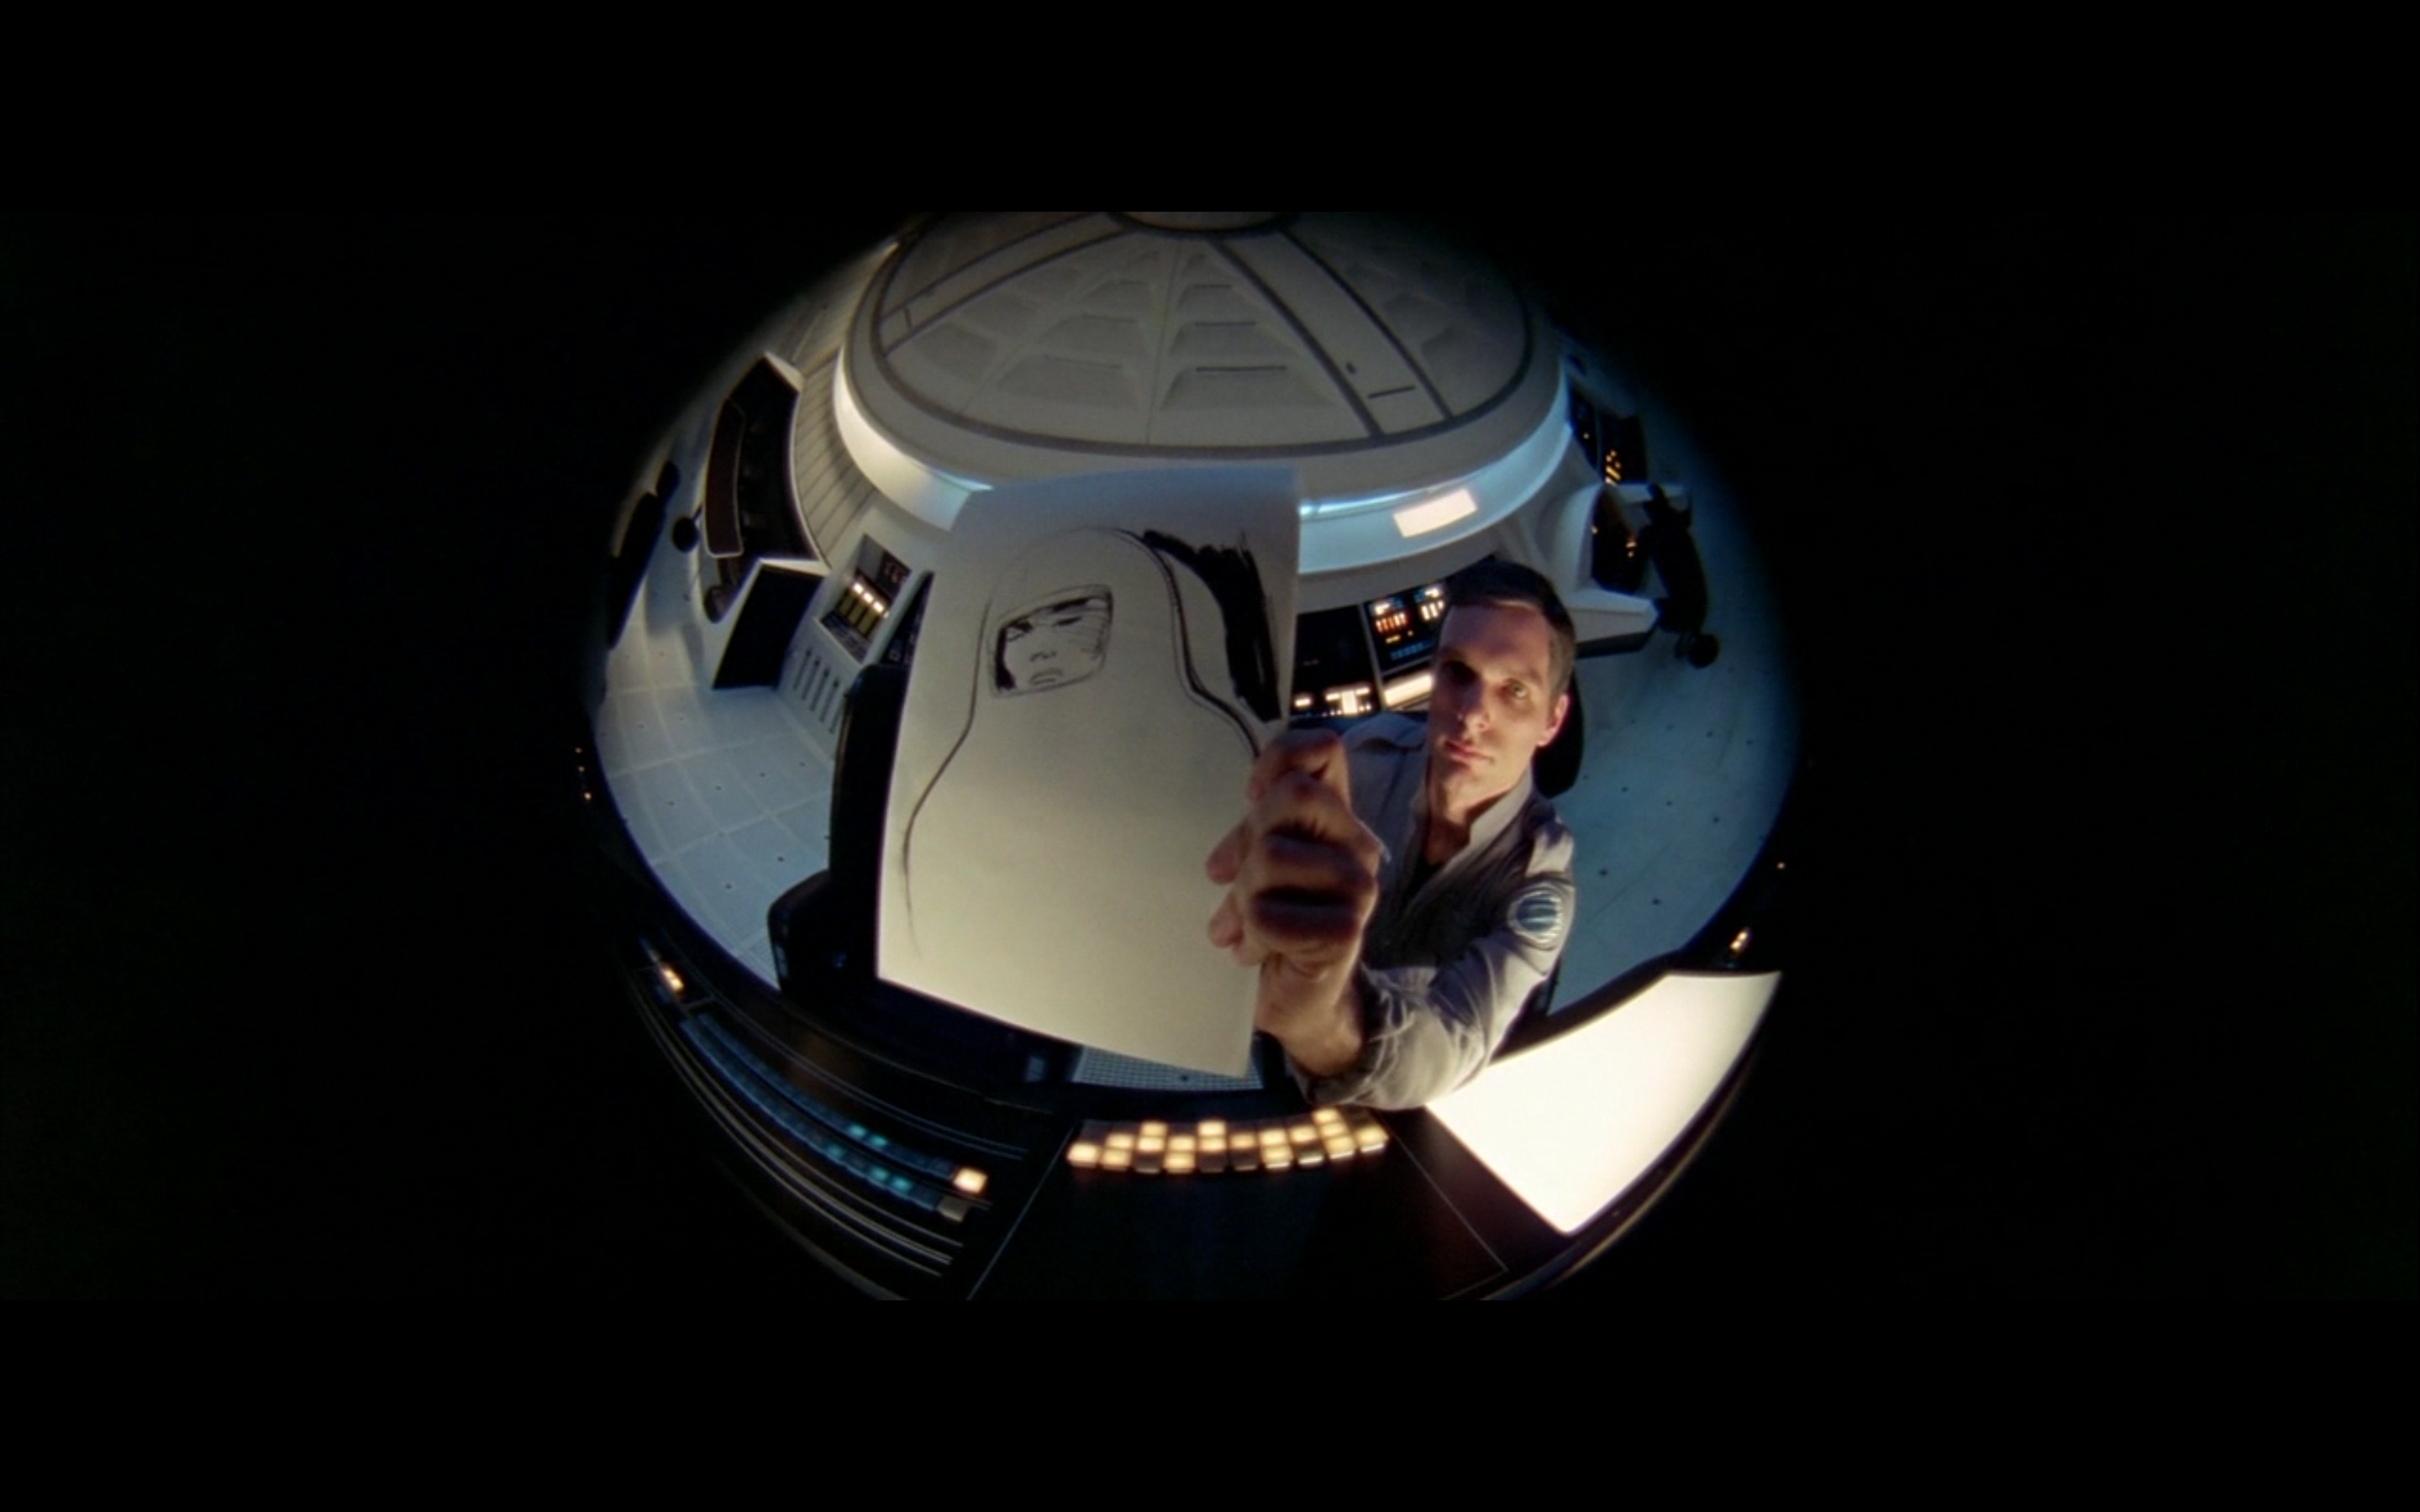 A fisheye lens gives us HAL's perspective.